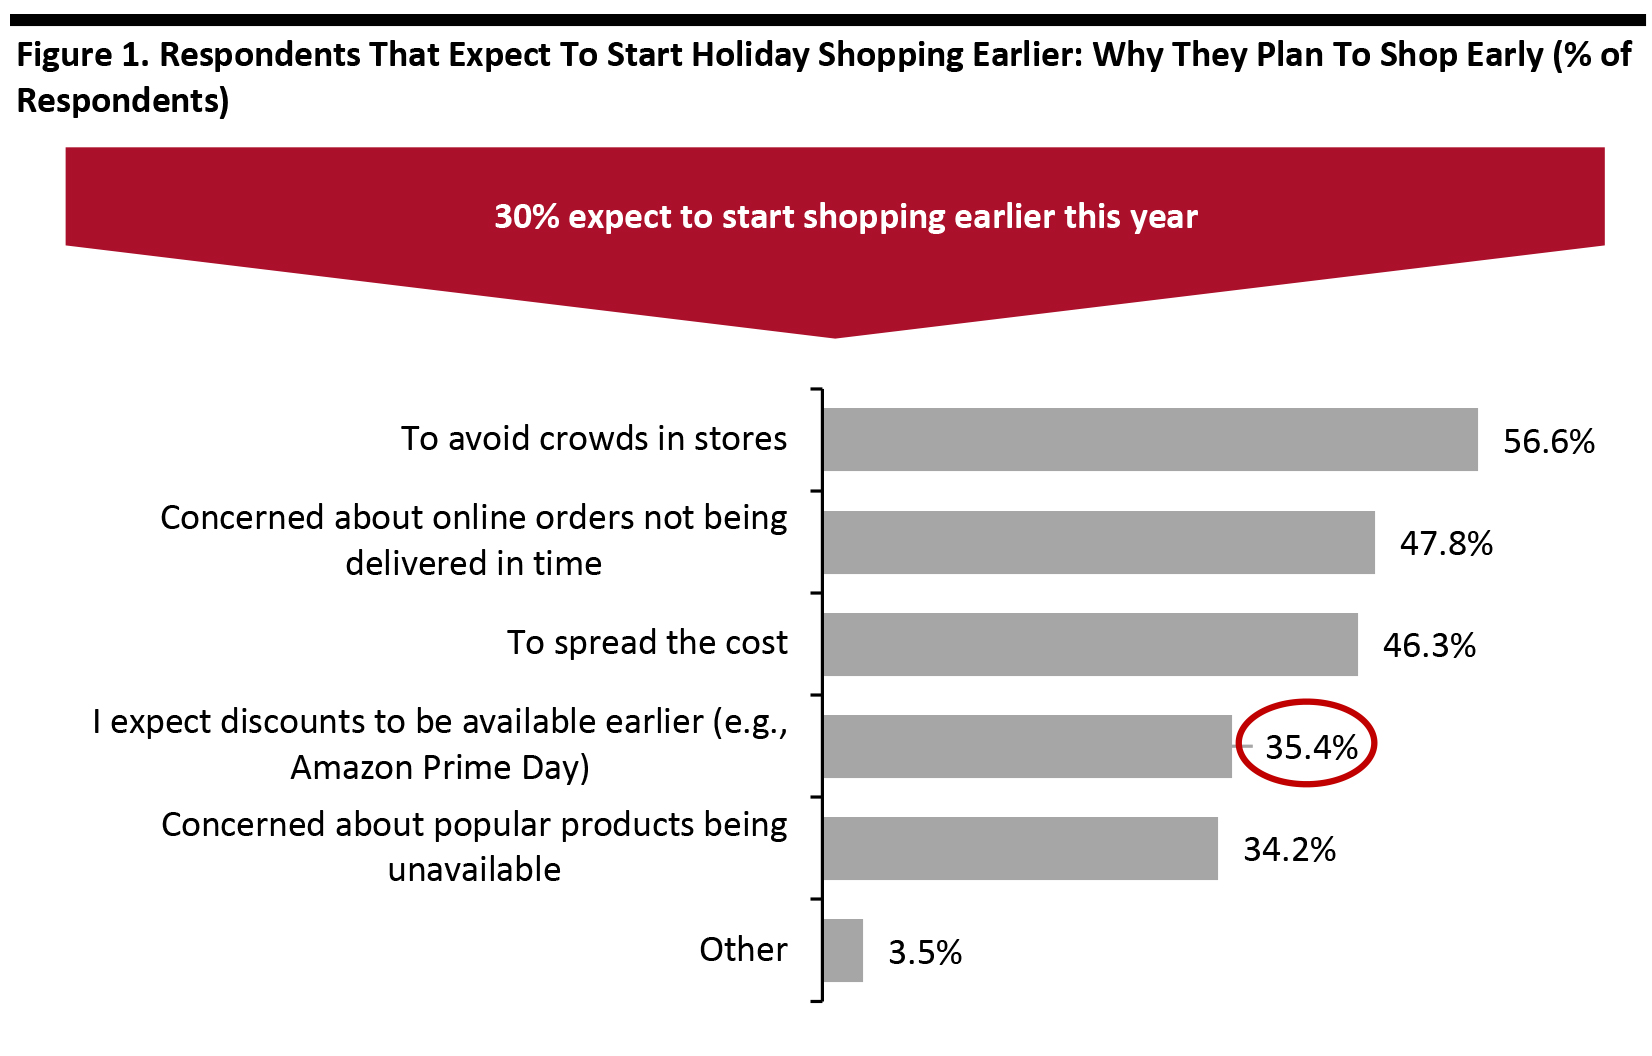 Figure 1. Respondents That Expect To Start Holiday Shopping Earlier: Why They Plan To Shop Early (% of Respondents)